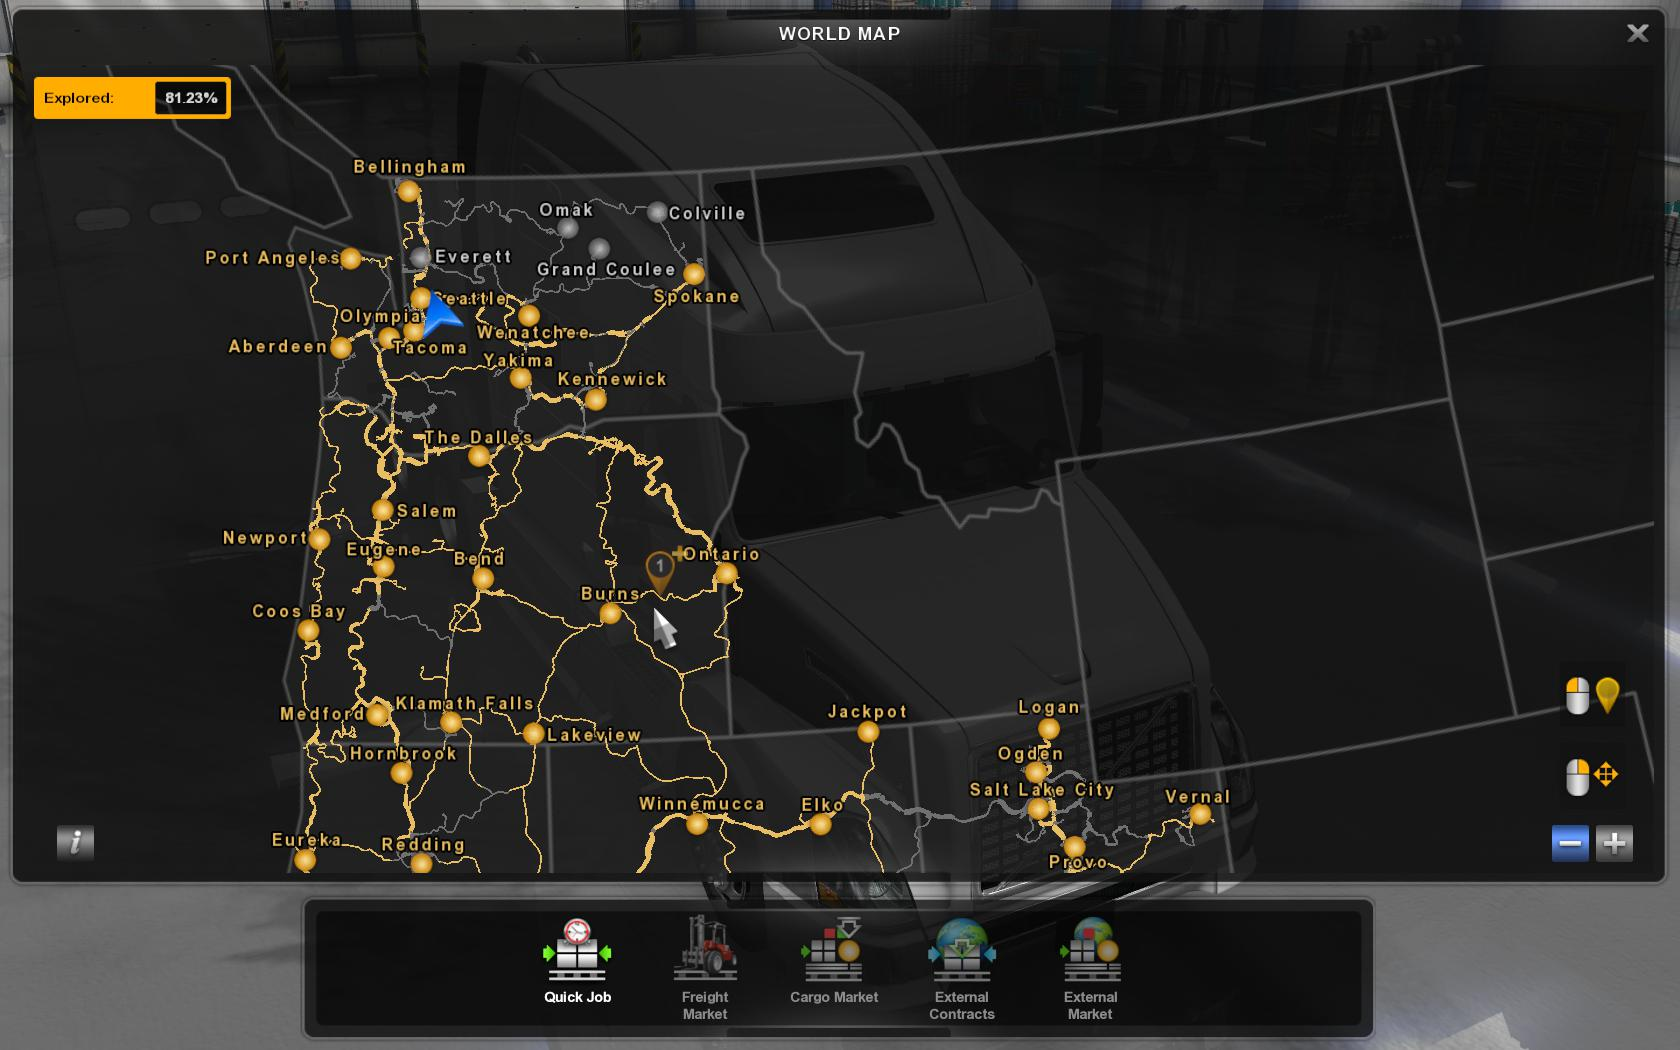 Ats All Garages And Dealers In Map Dlcs V0 1 1 36 X American